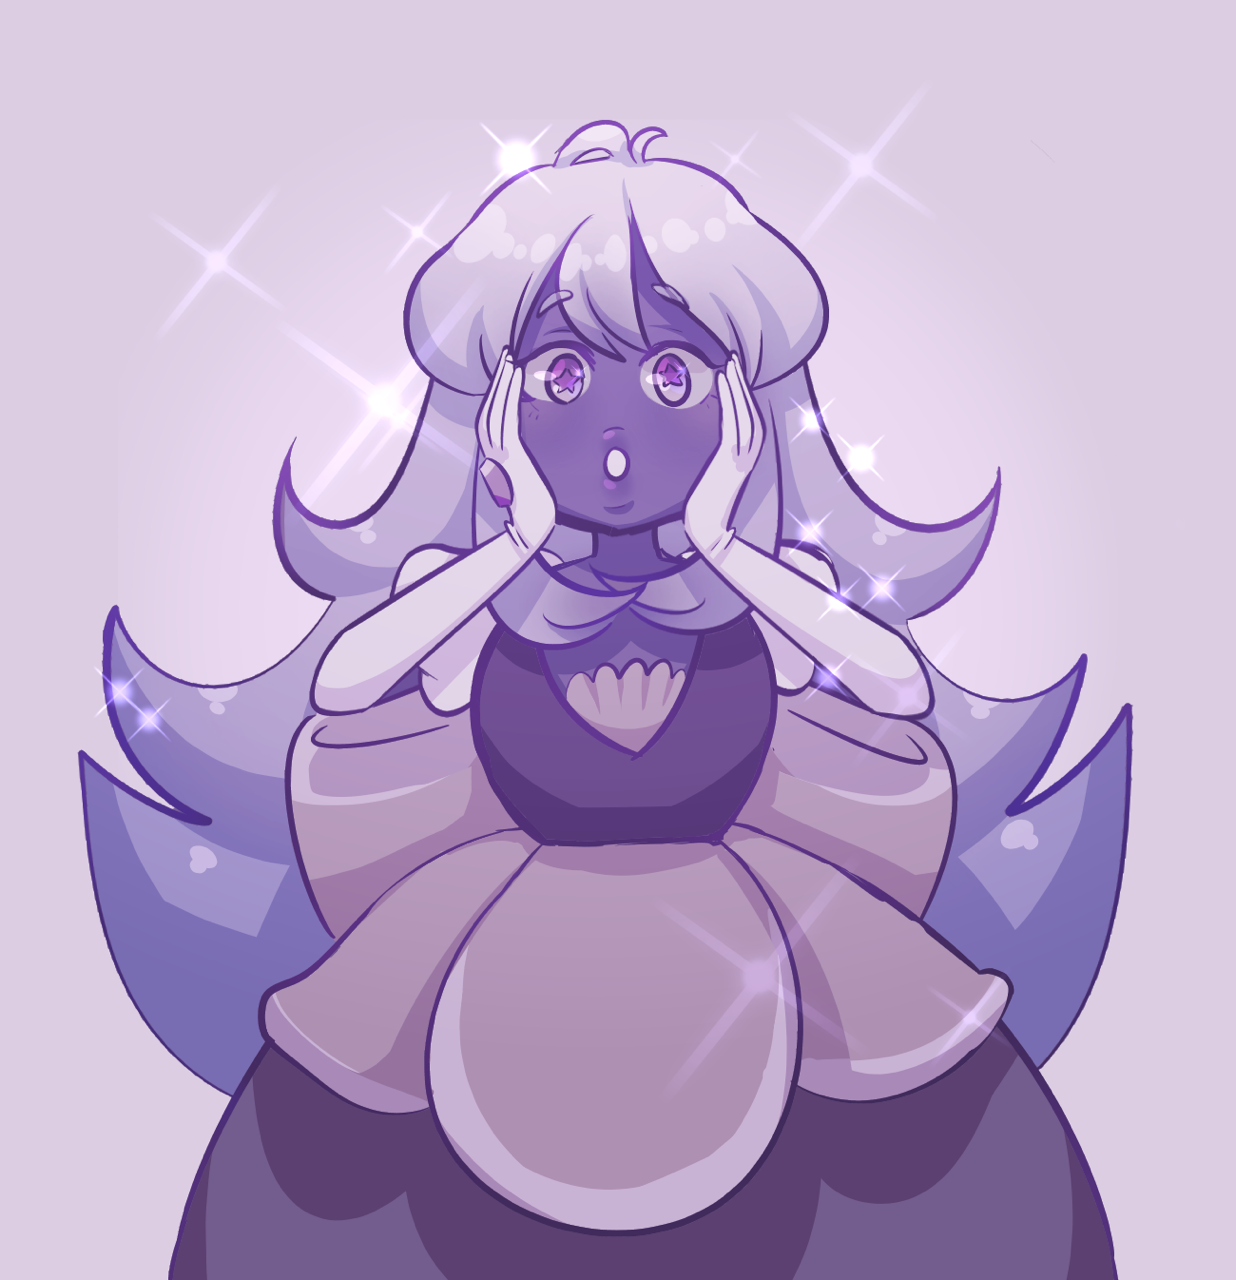 i'd imagine violet sapphire to have two eyes!! one from paddy, one from sapphy